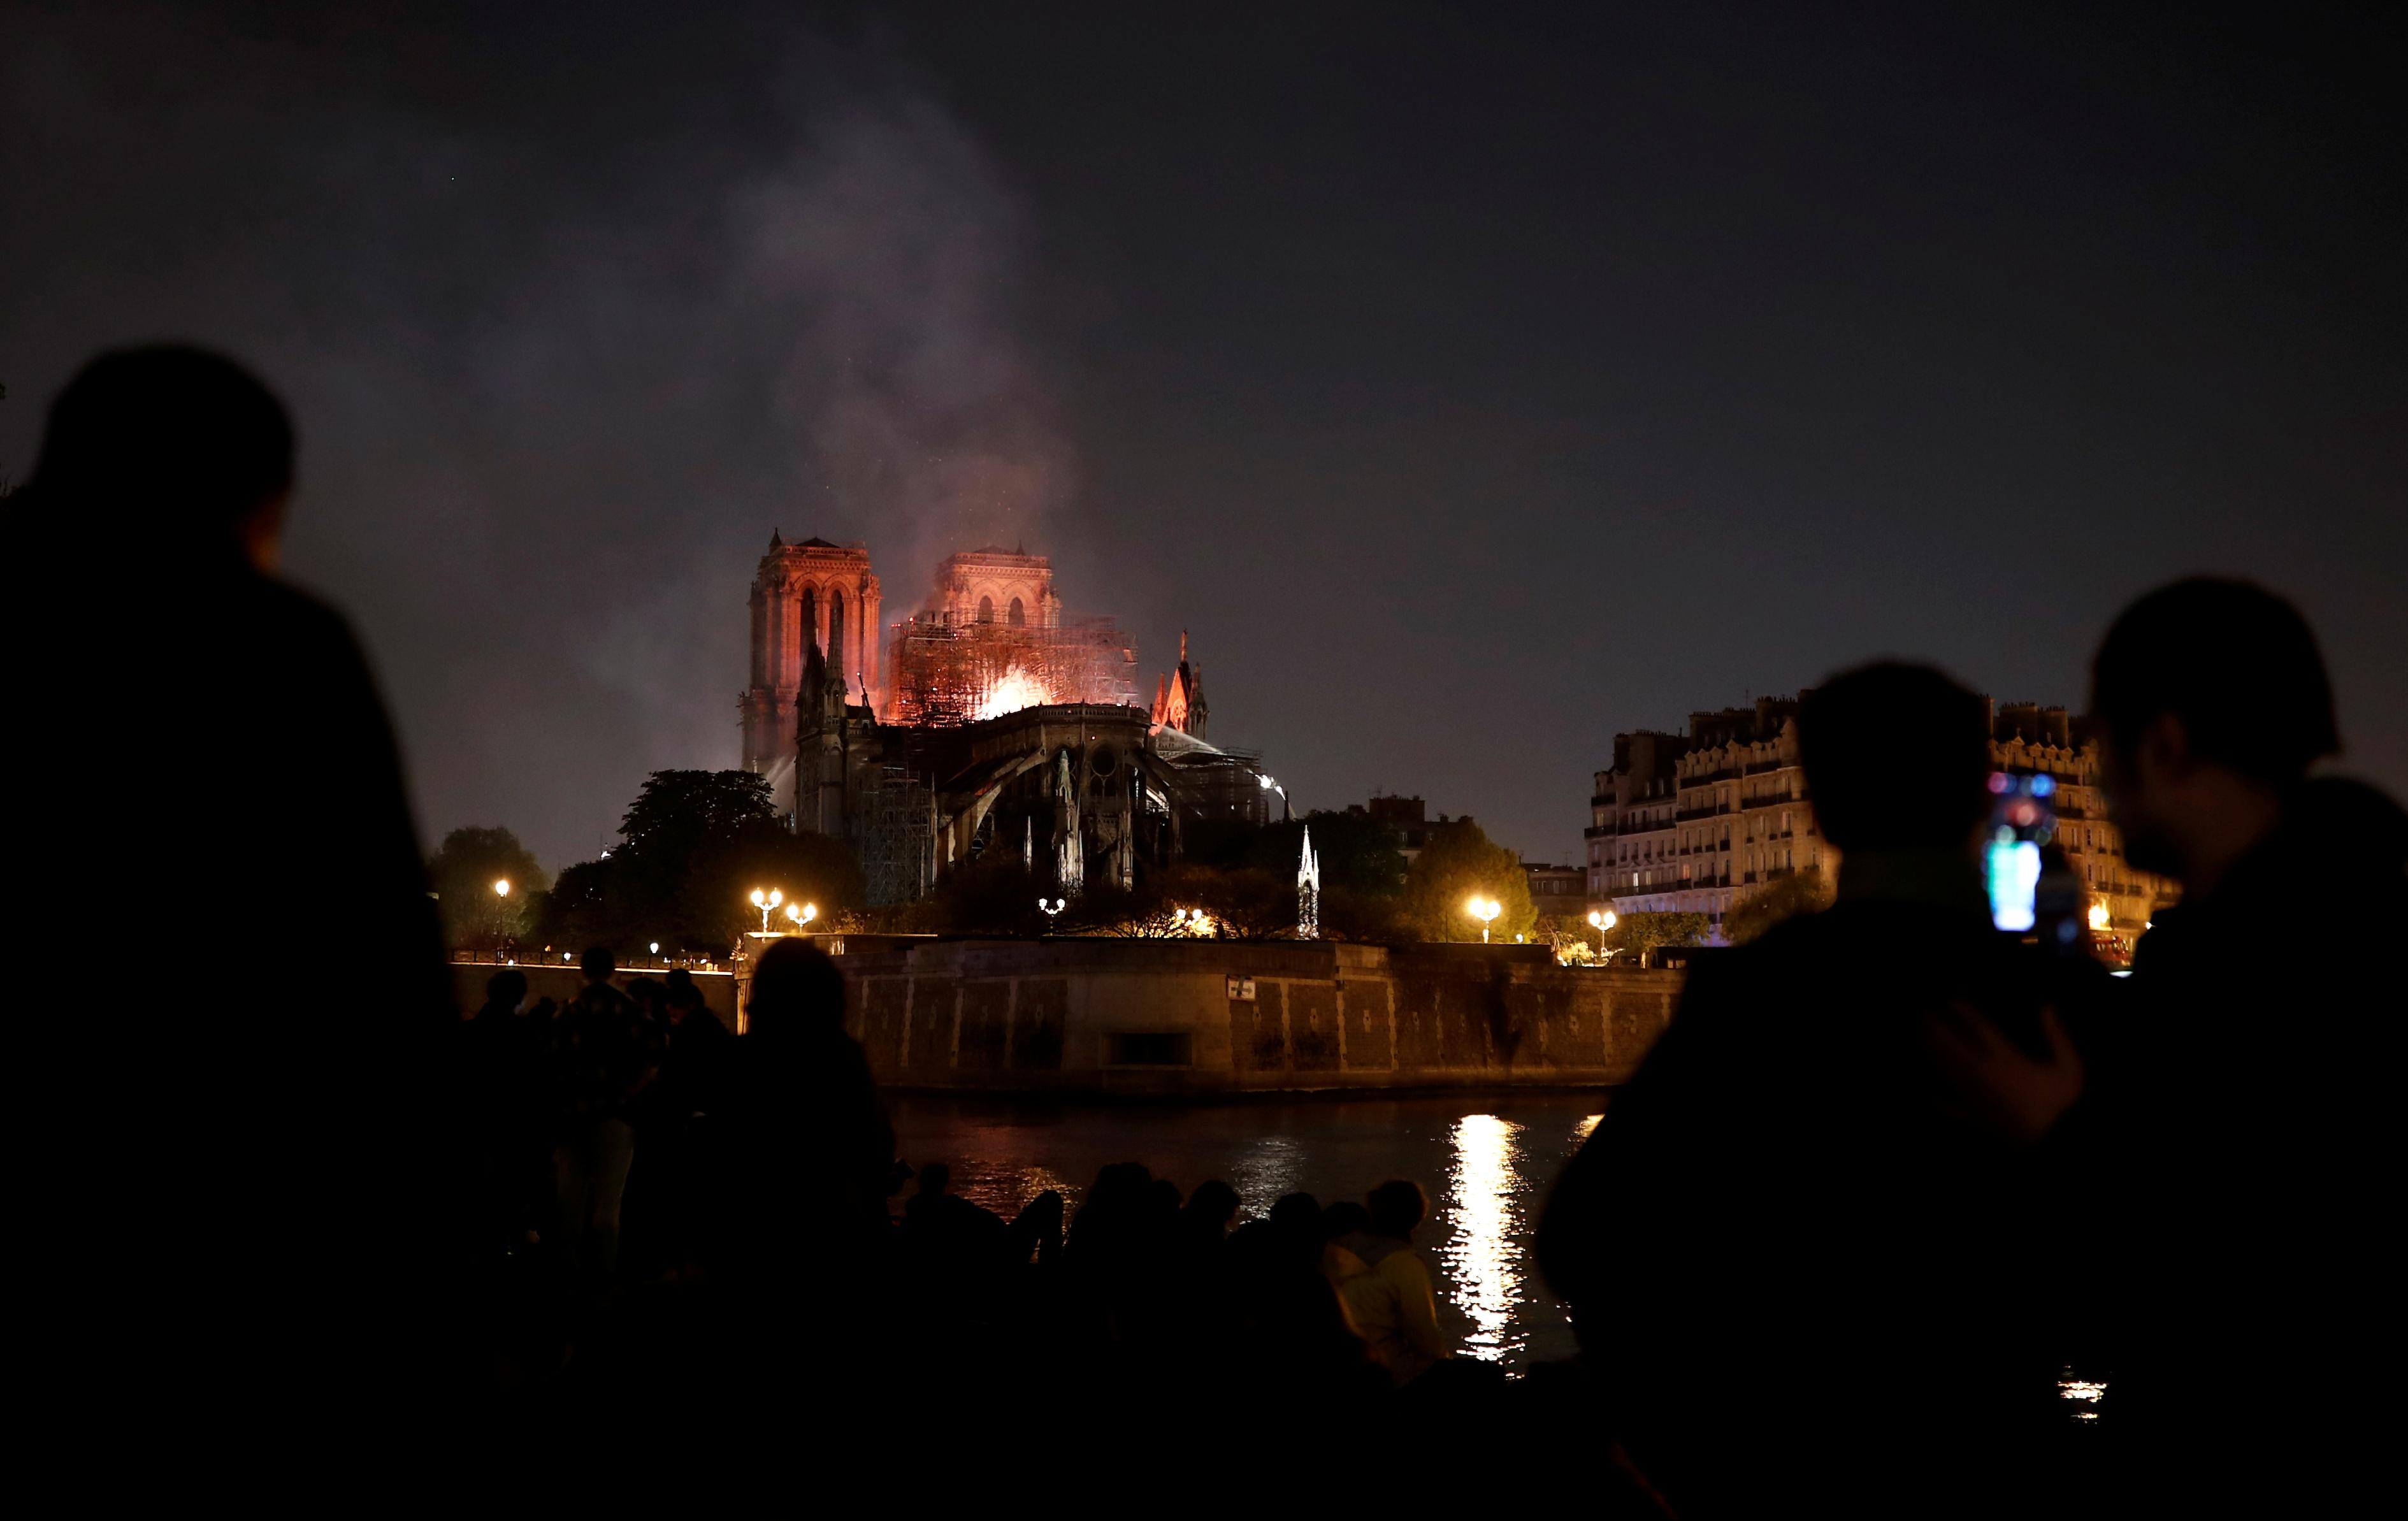 'City of lights' plunged into dark sorrow as Notre-Dame burns